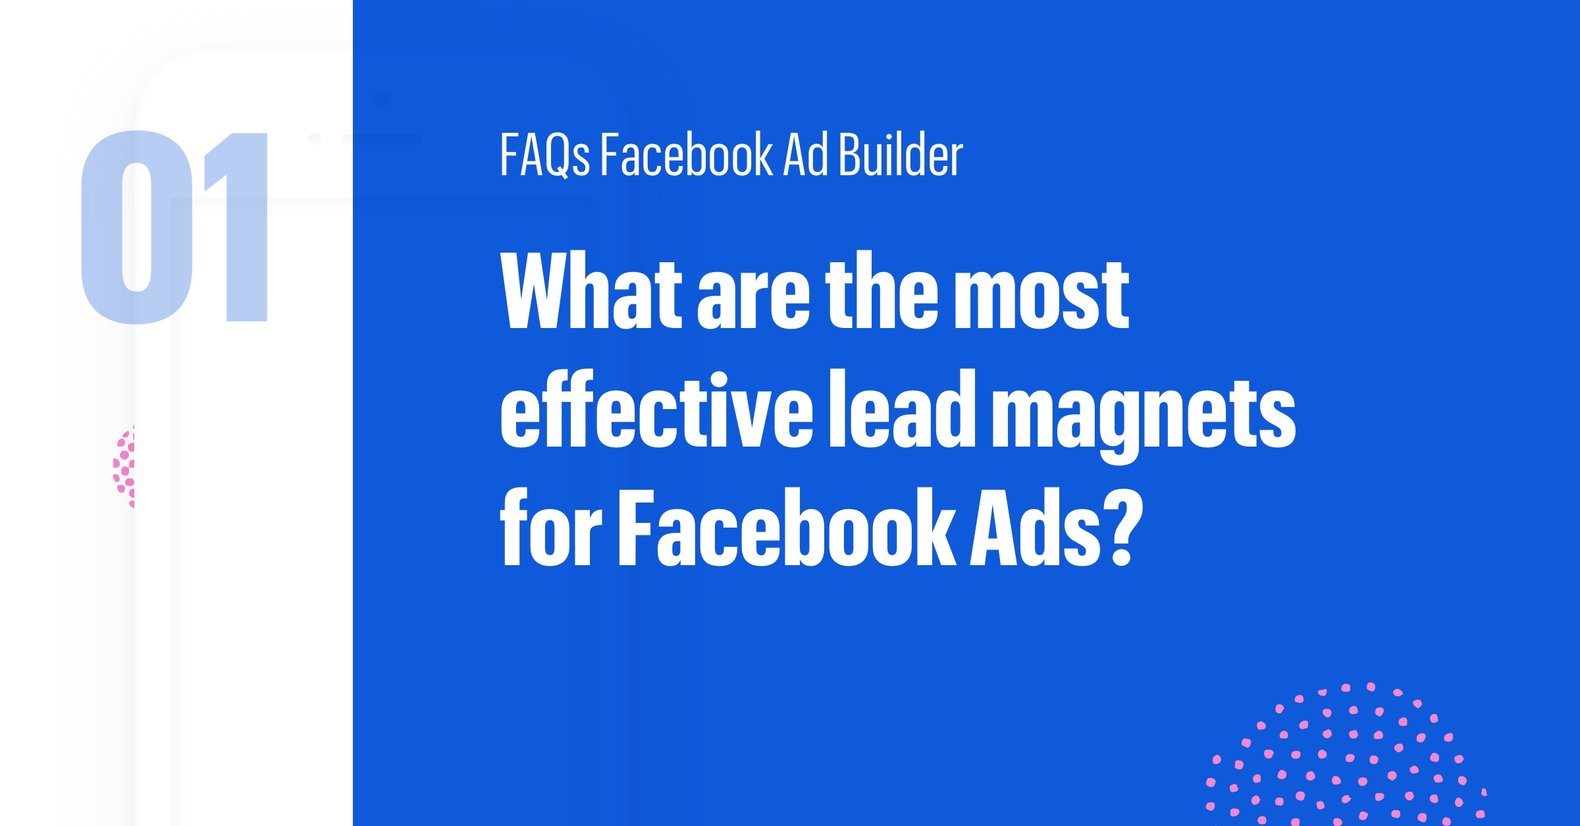 Leadpages Facebook Ad Lead Magnet for Lead Generation